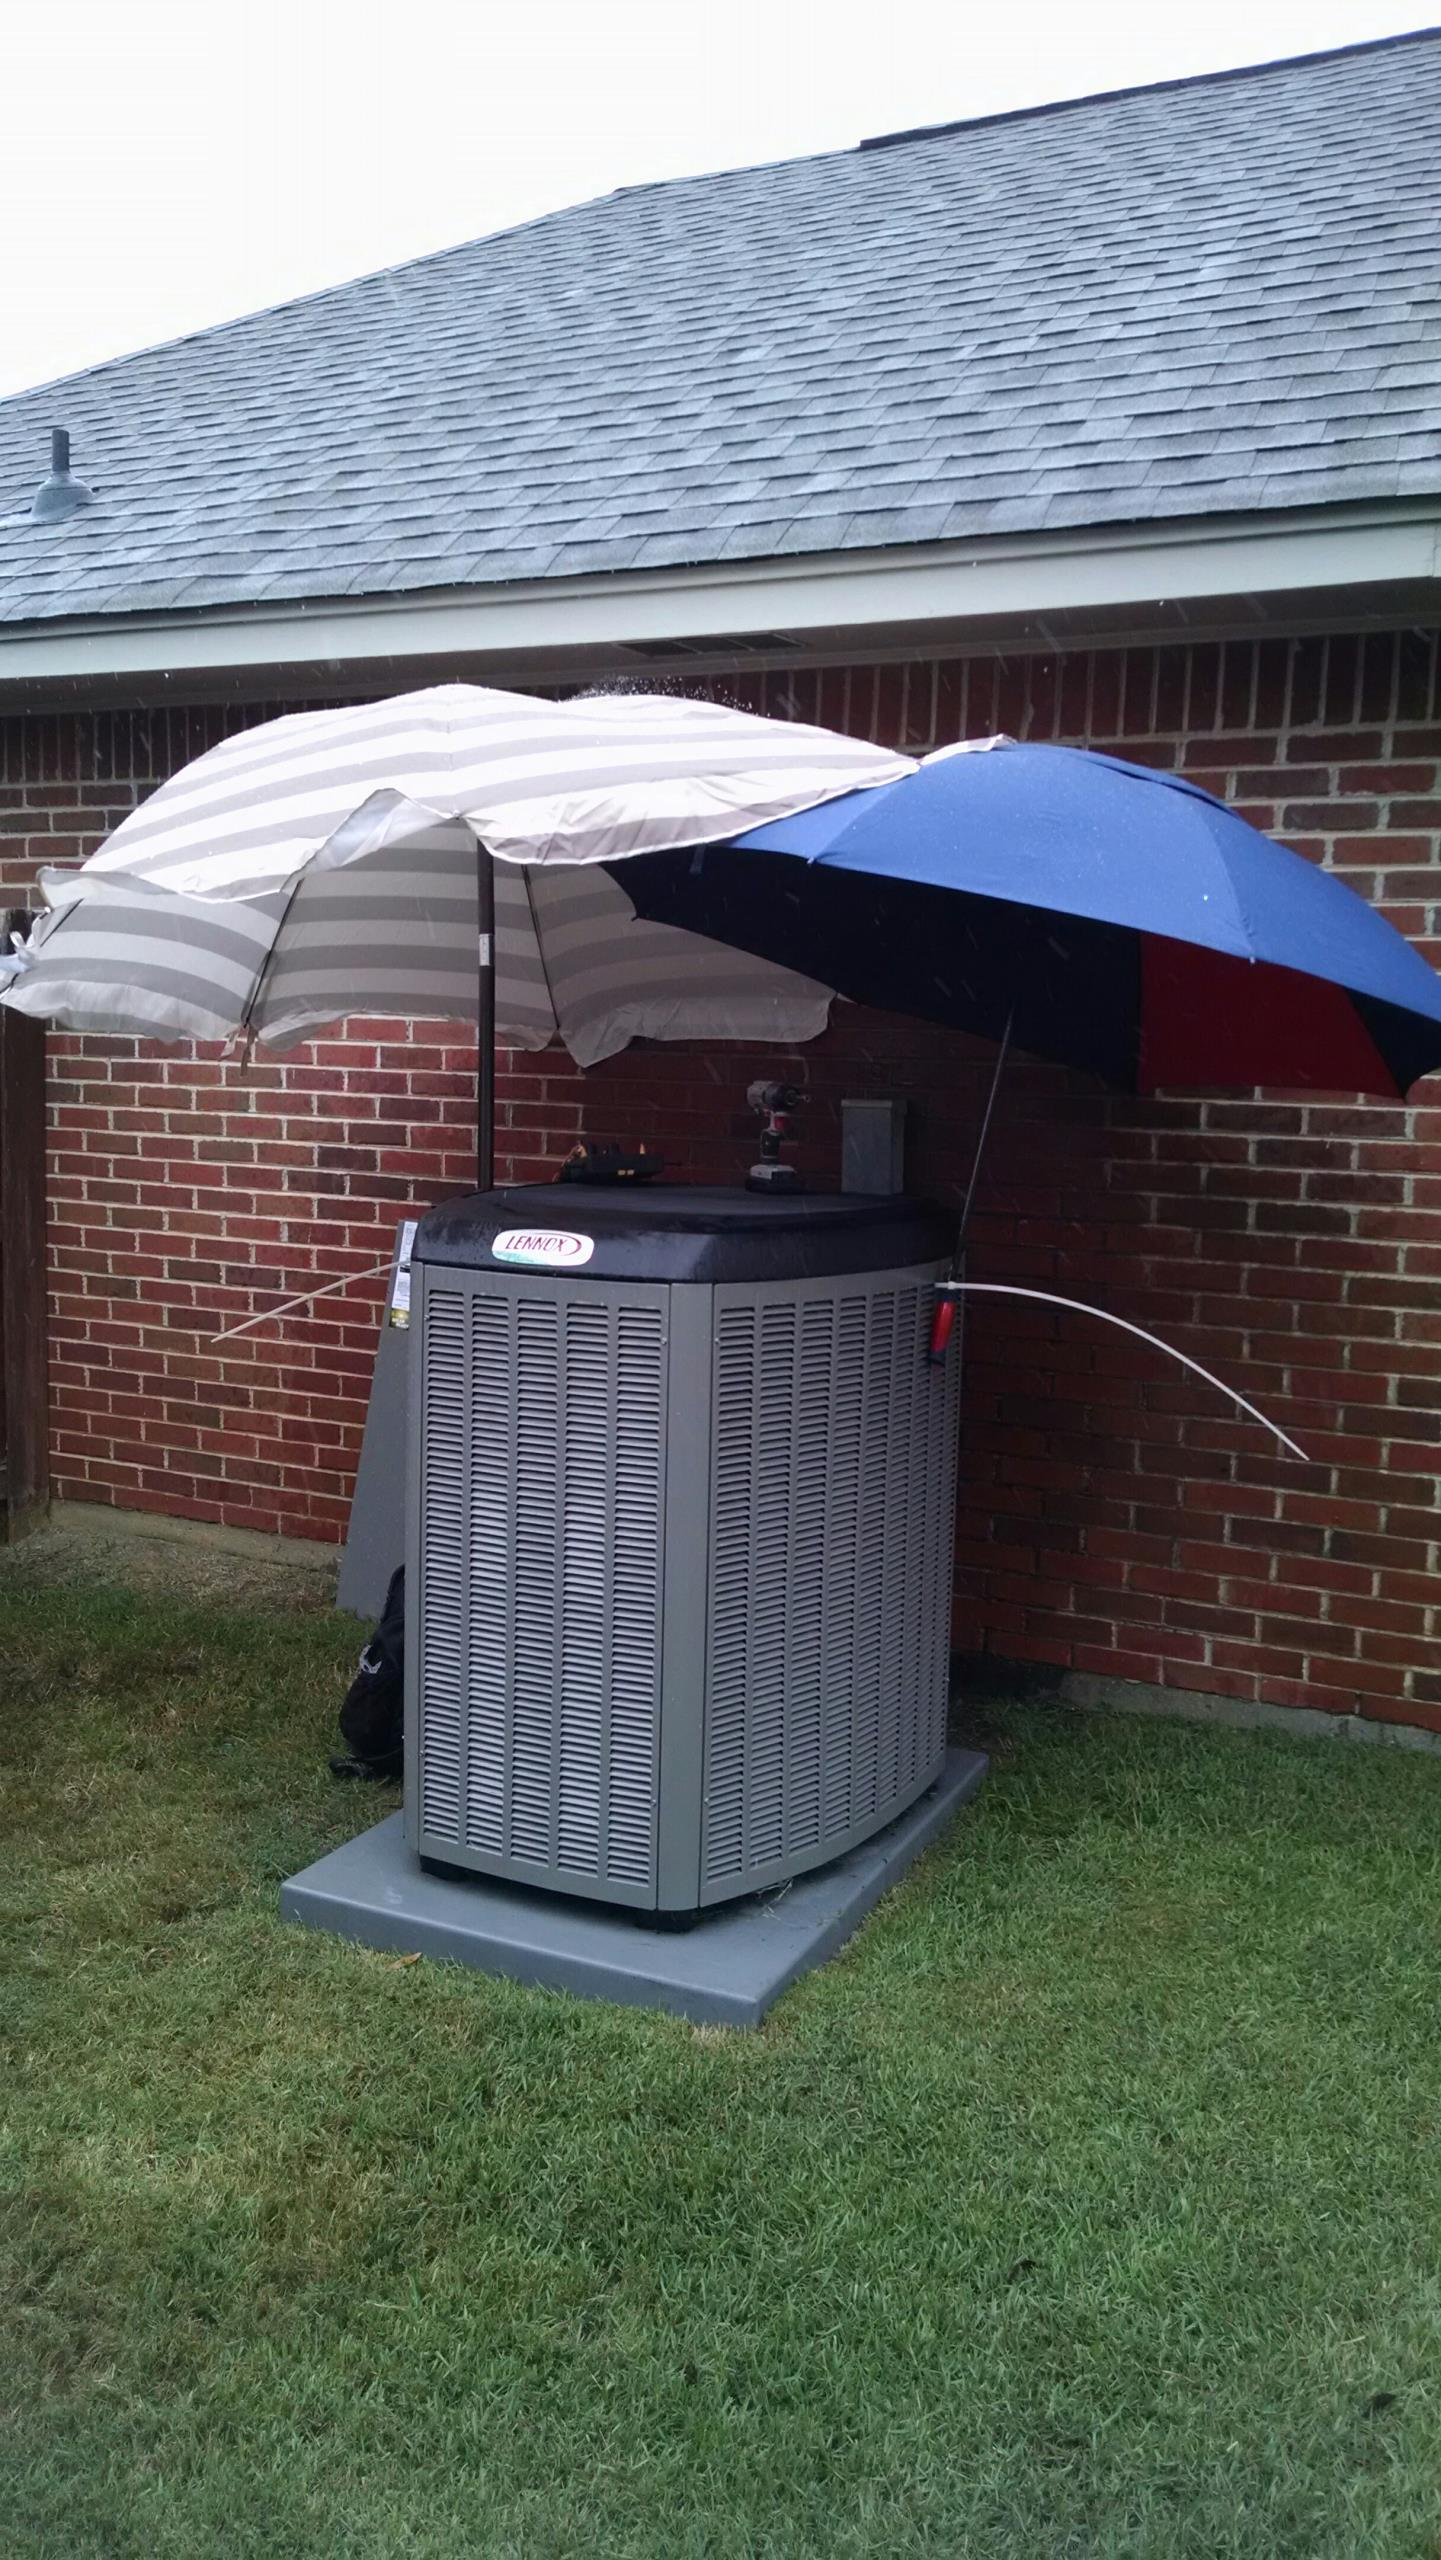 Prattville, AL - Checking out a heat pump in a Tropical Storm